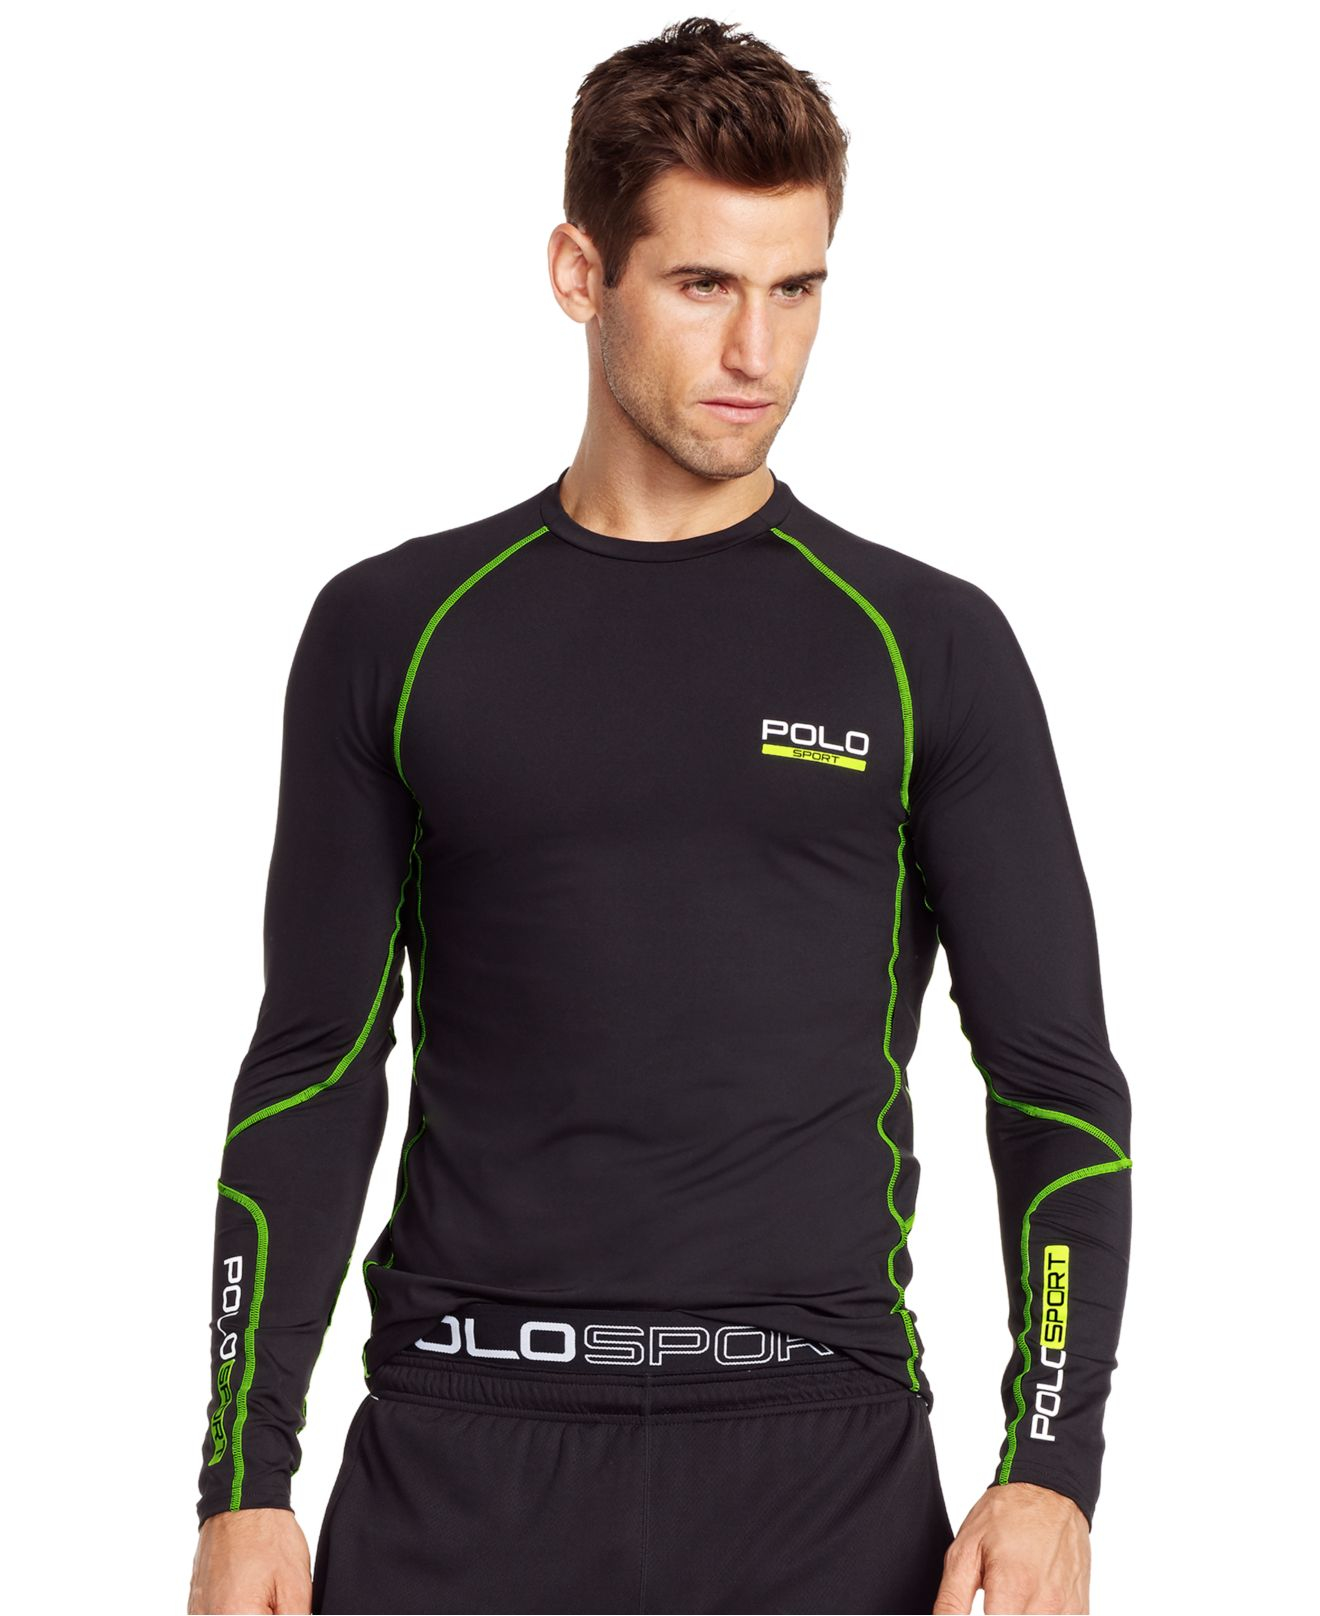 polo ralph lauren all sport compression shirt in black for. Black Bedroom Furniture Sets. Home Design Ideas